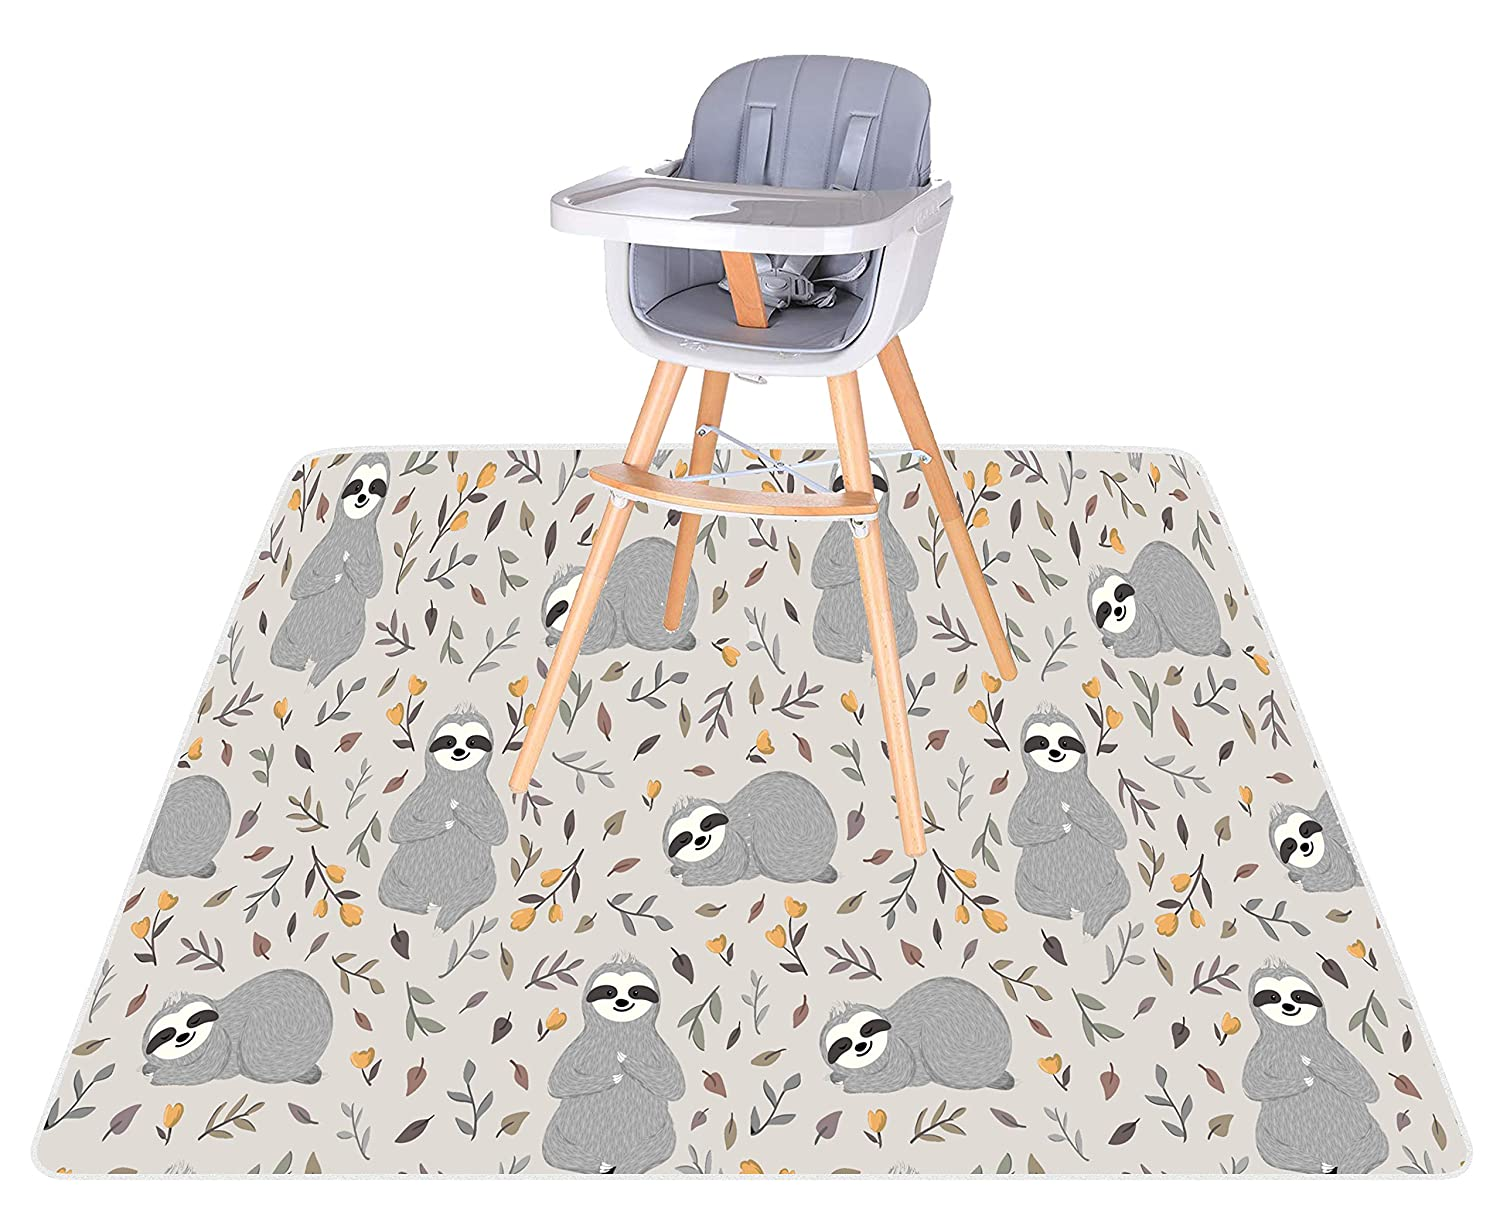 """BABYBOET Splat Mat for Baby – Under High Chair Floor Mat Protects Wood, Vinyl and Carpet from Spills – Waterproof Triple Layer Baby Mat with Anti-Skid Backing Deters Bunching and Sliding (51"""" x 51"""")"""